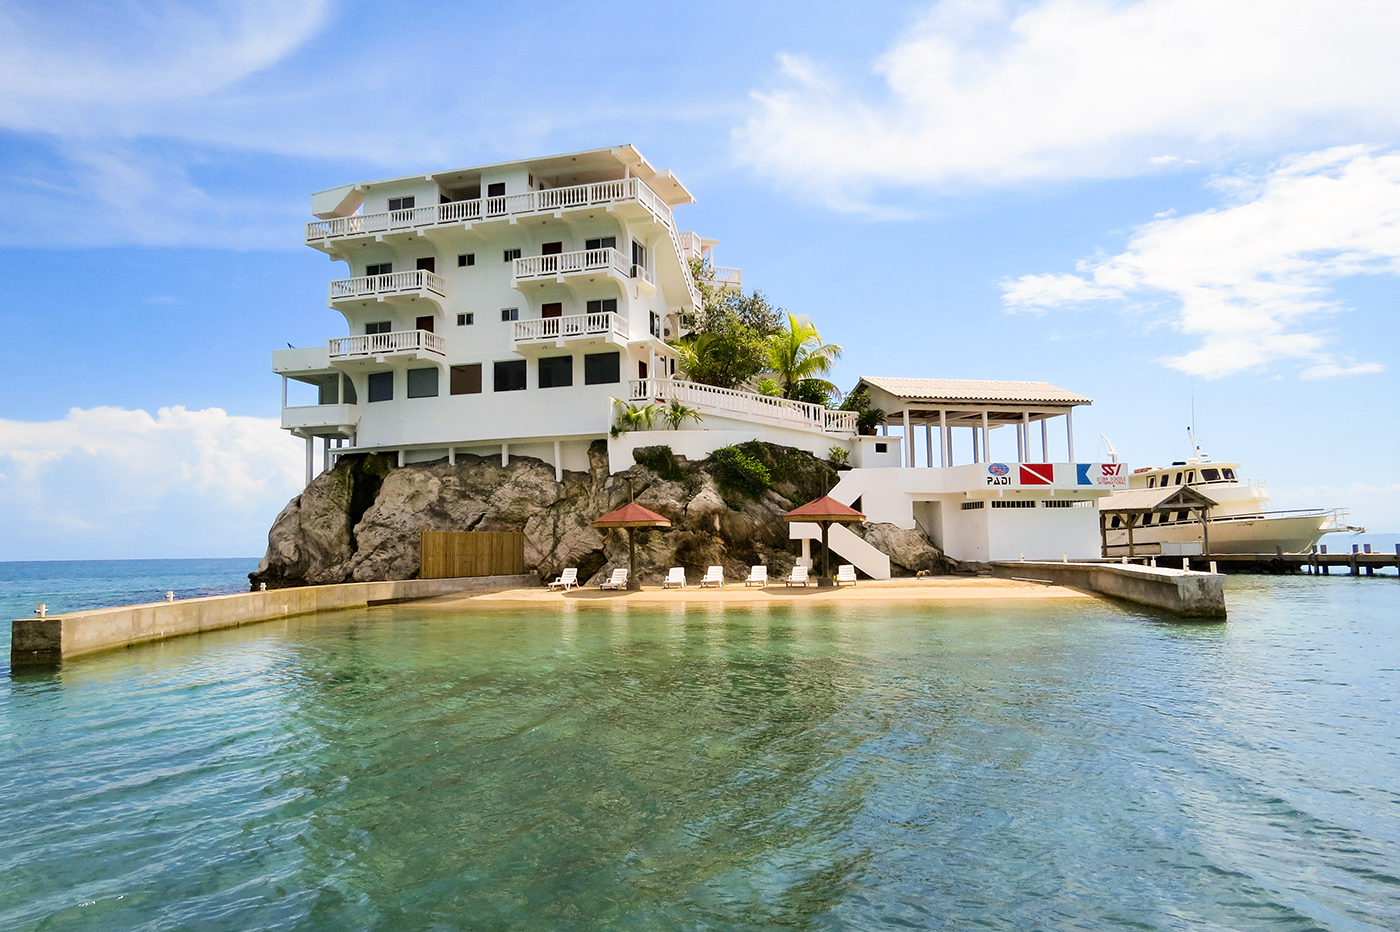 Dunbar Rock has a small beach, which provides swimmers and snorkelers with easy access to the extensive shallow lagoon that surrounds the resort.